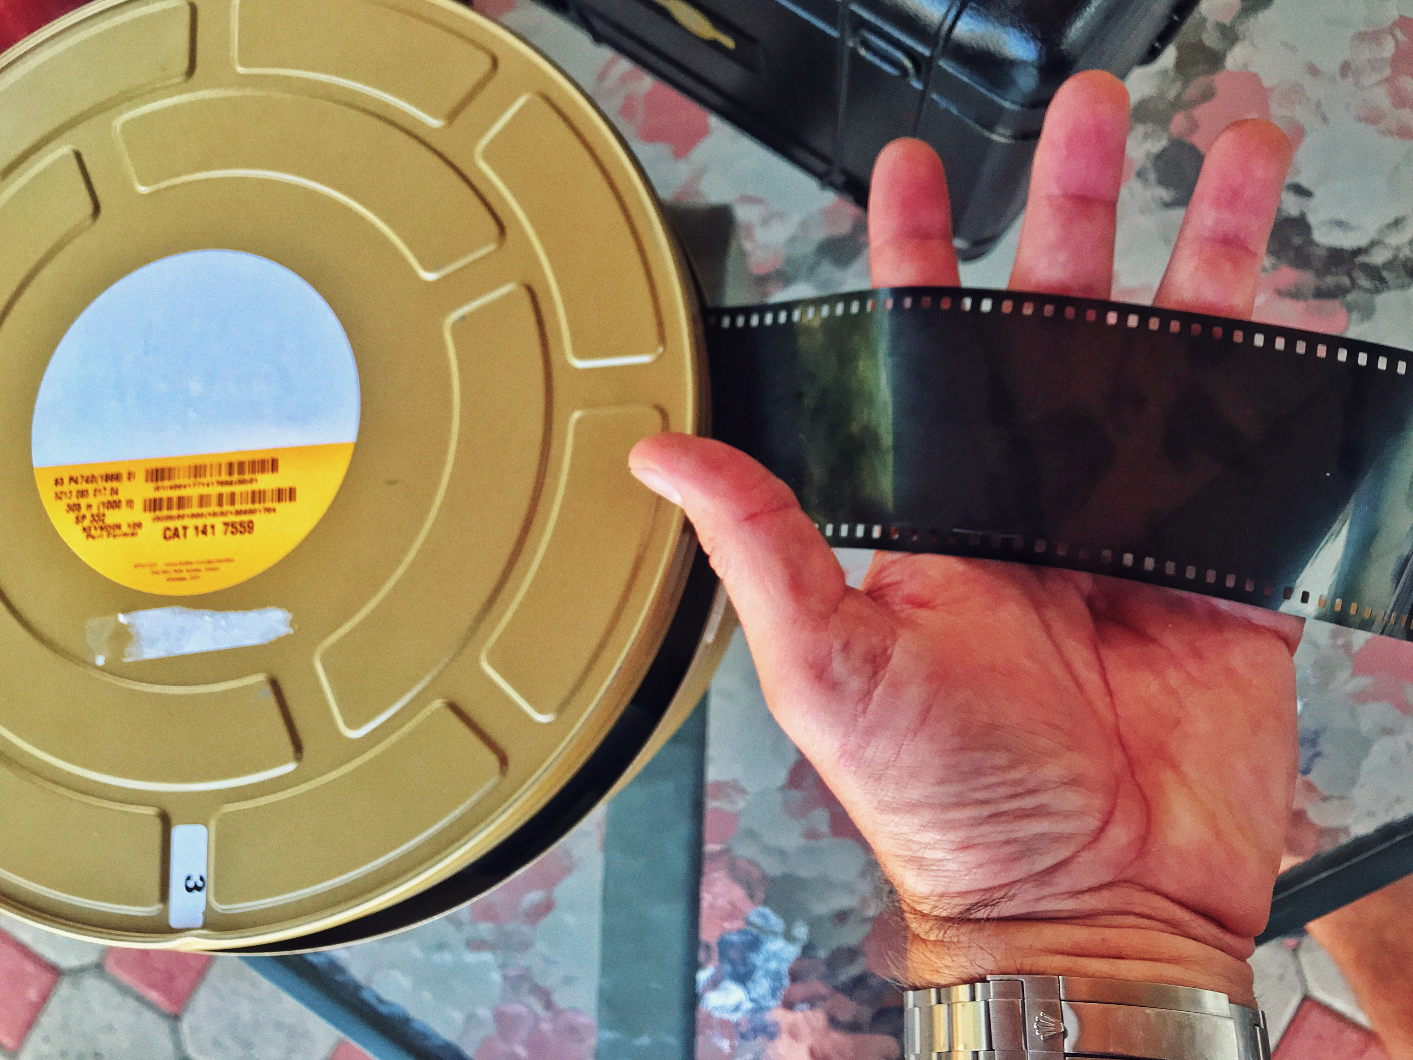 65mm motion picture film is bigger than you think  Here's a 1,000